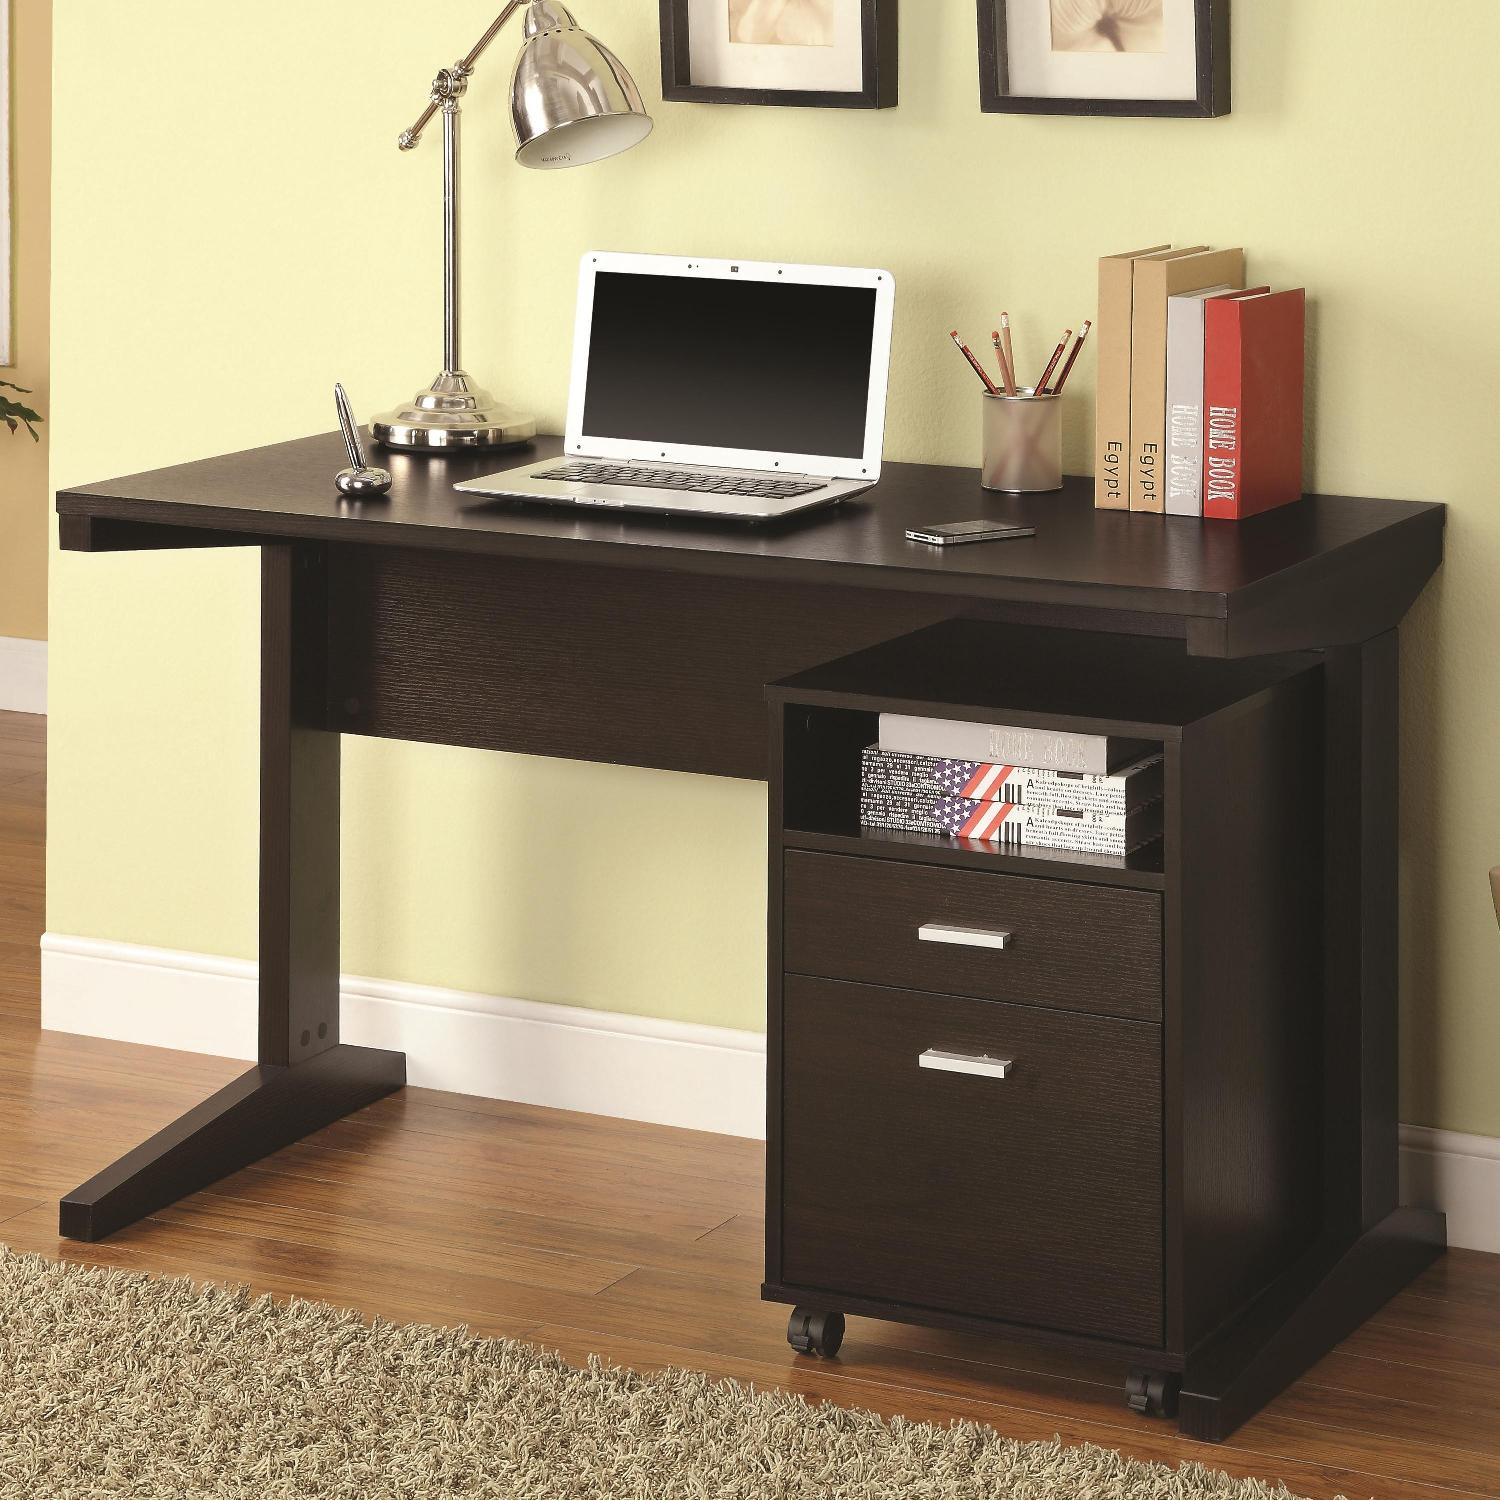 Modern Desk & Cabinet Set in Cappuccino Finish - image-1